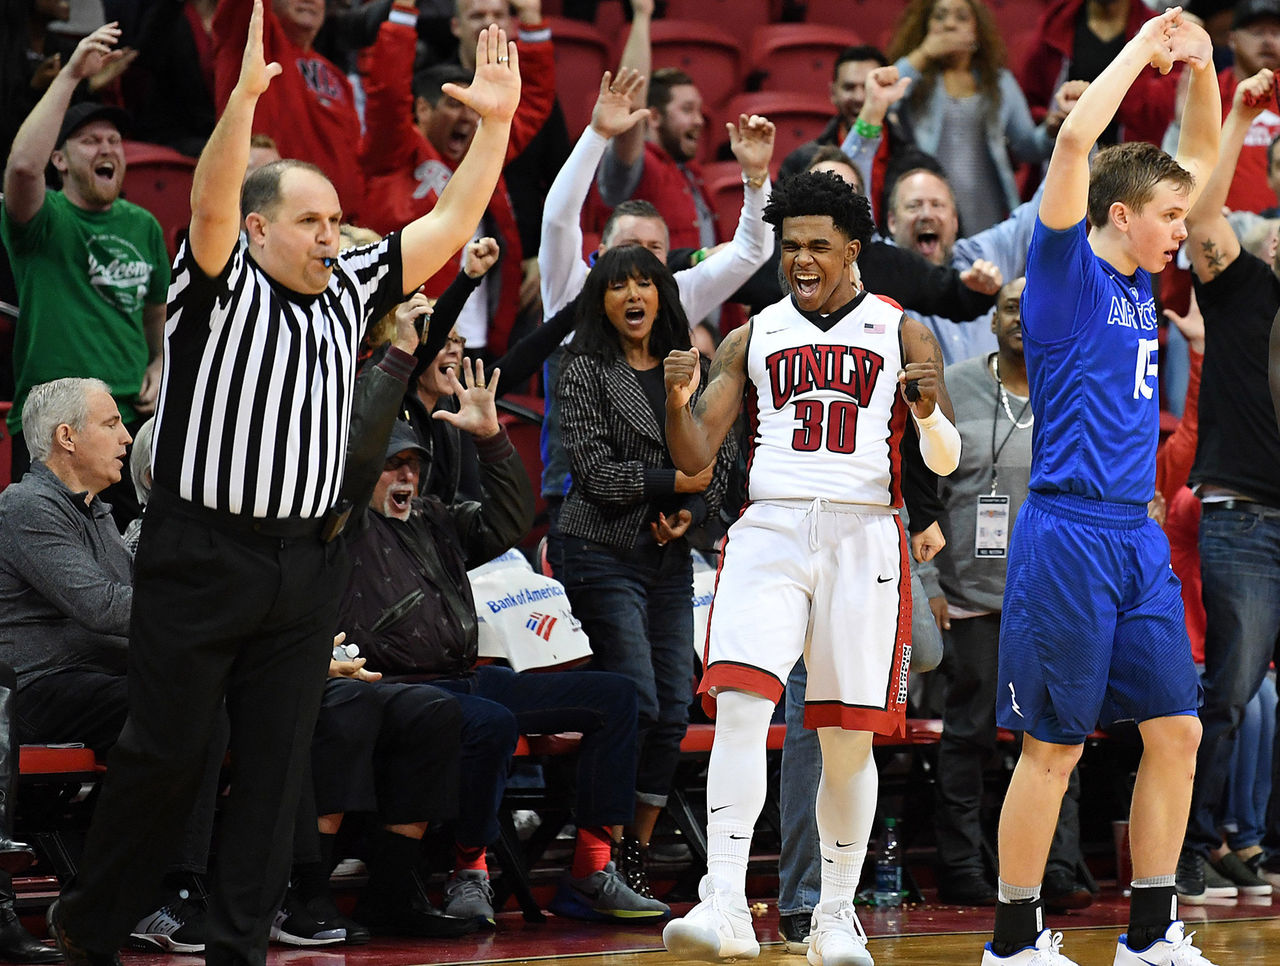 Cropped 2017 01 22t022330z 1700556099 nocid rtrmadp 3 ncaa basketball air force at unlv